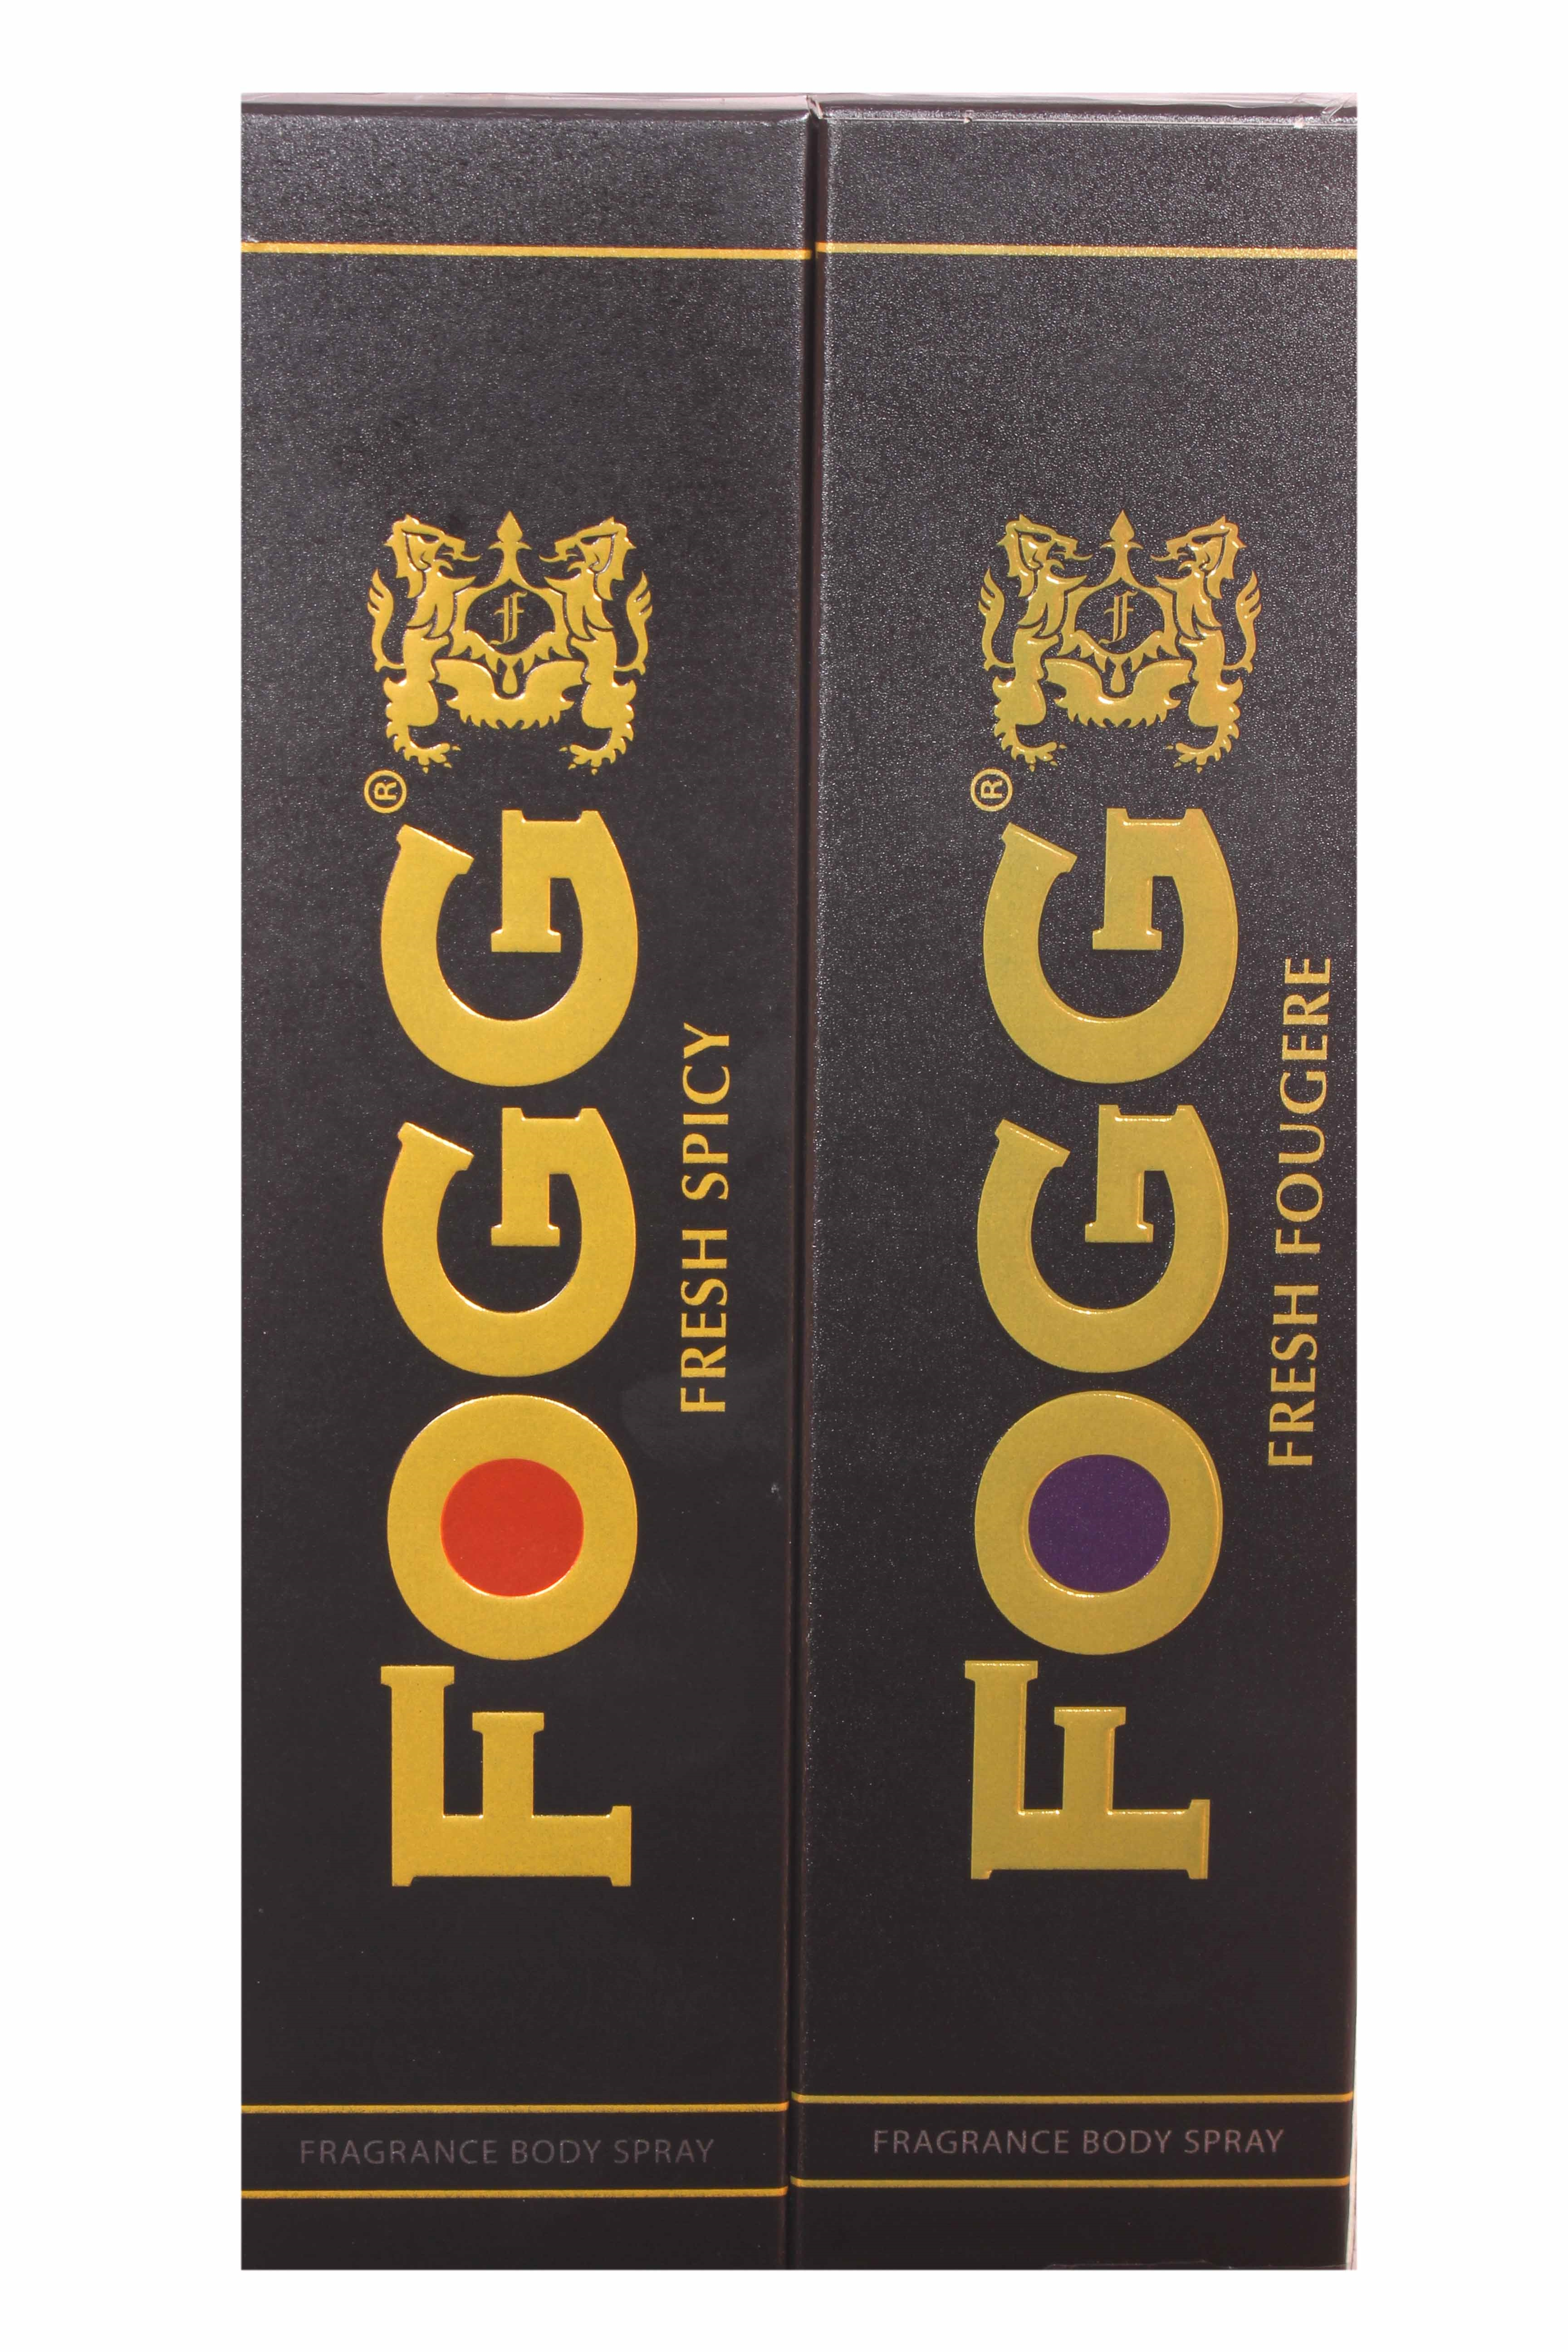 Fogg Combo Pack Fresh (Spicy + Fougere) Fragrance Body Spray - 150 ml each  (Pack of 2)